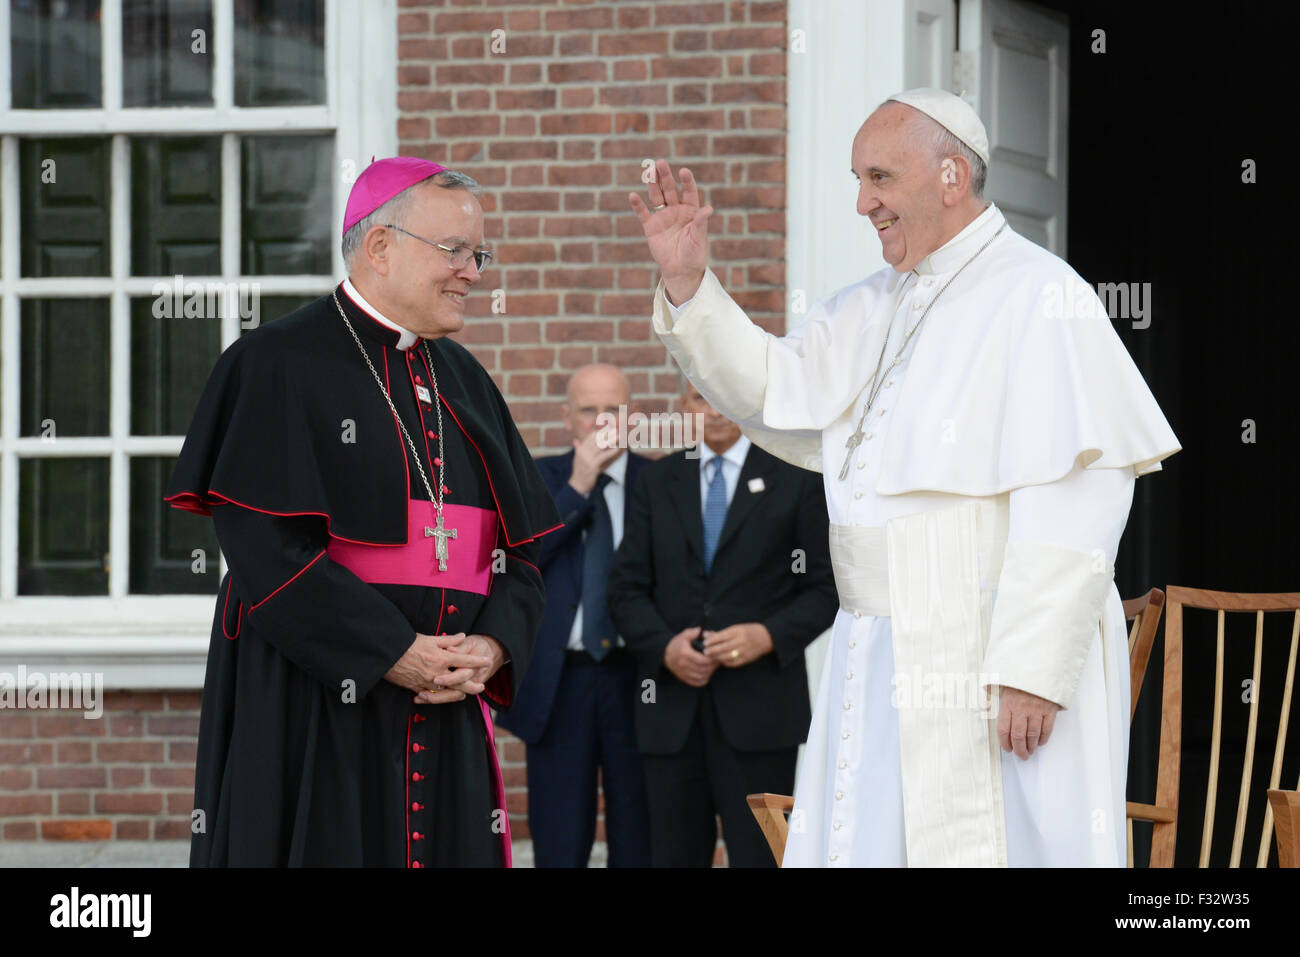 Pope Francis accompanied by Archbishop Charles Chaput address crowds gathered at Independence Hall September 26, - Stock Image